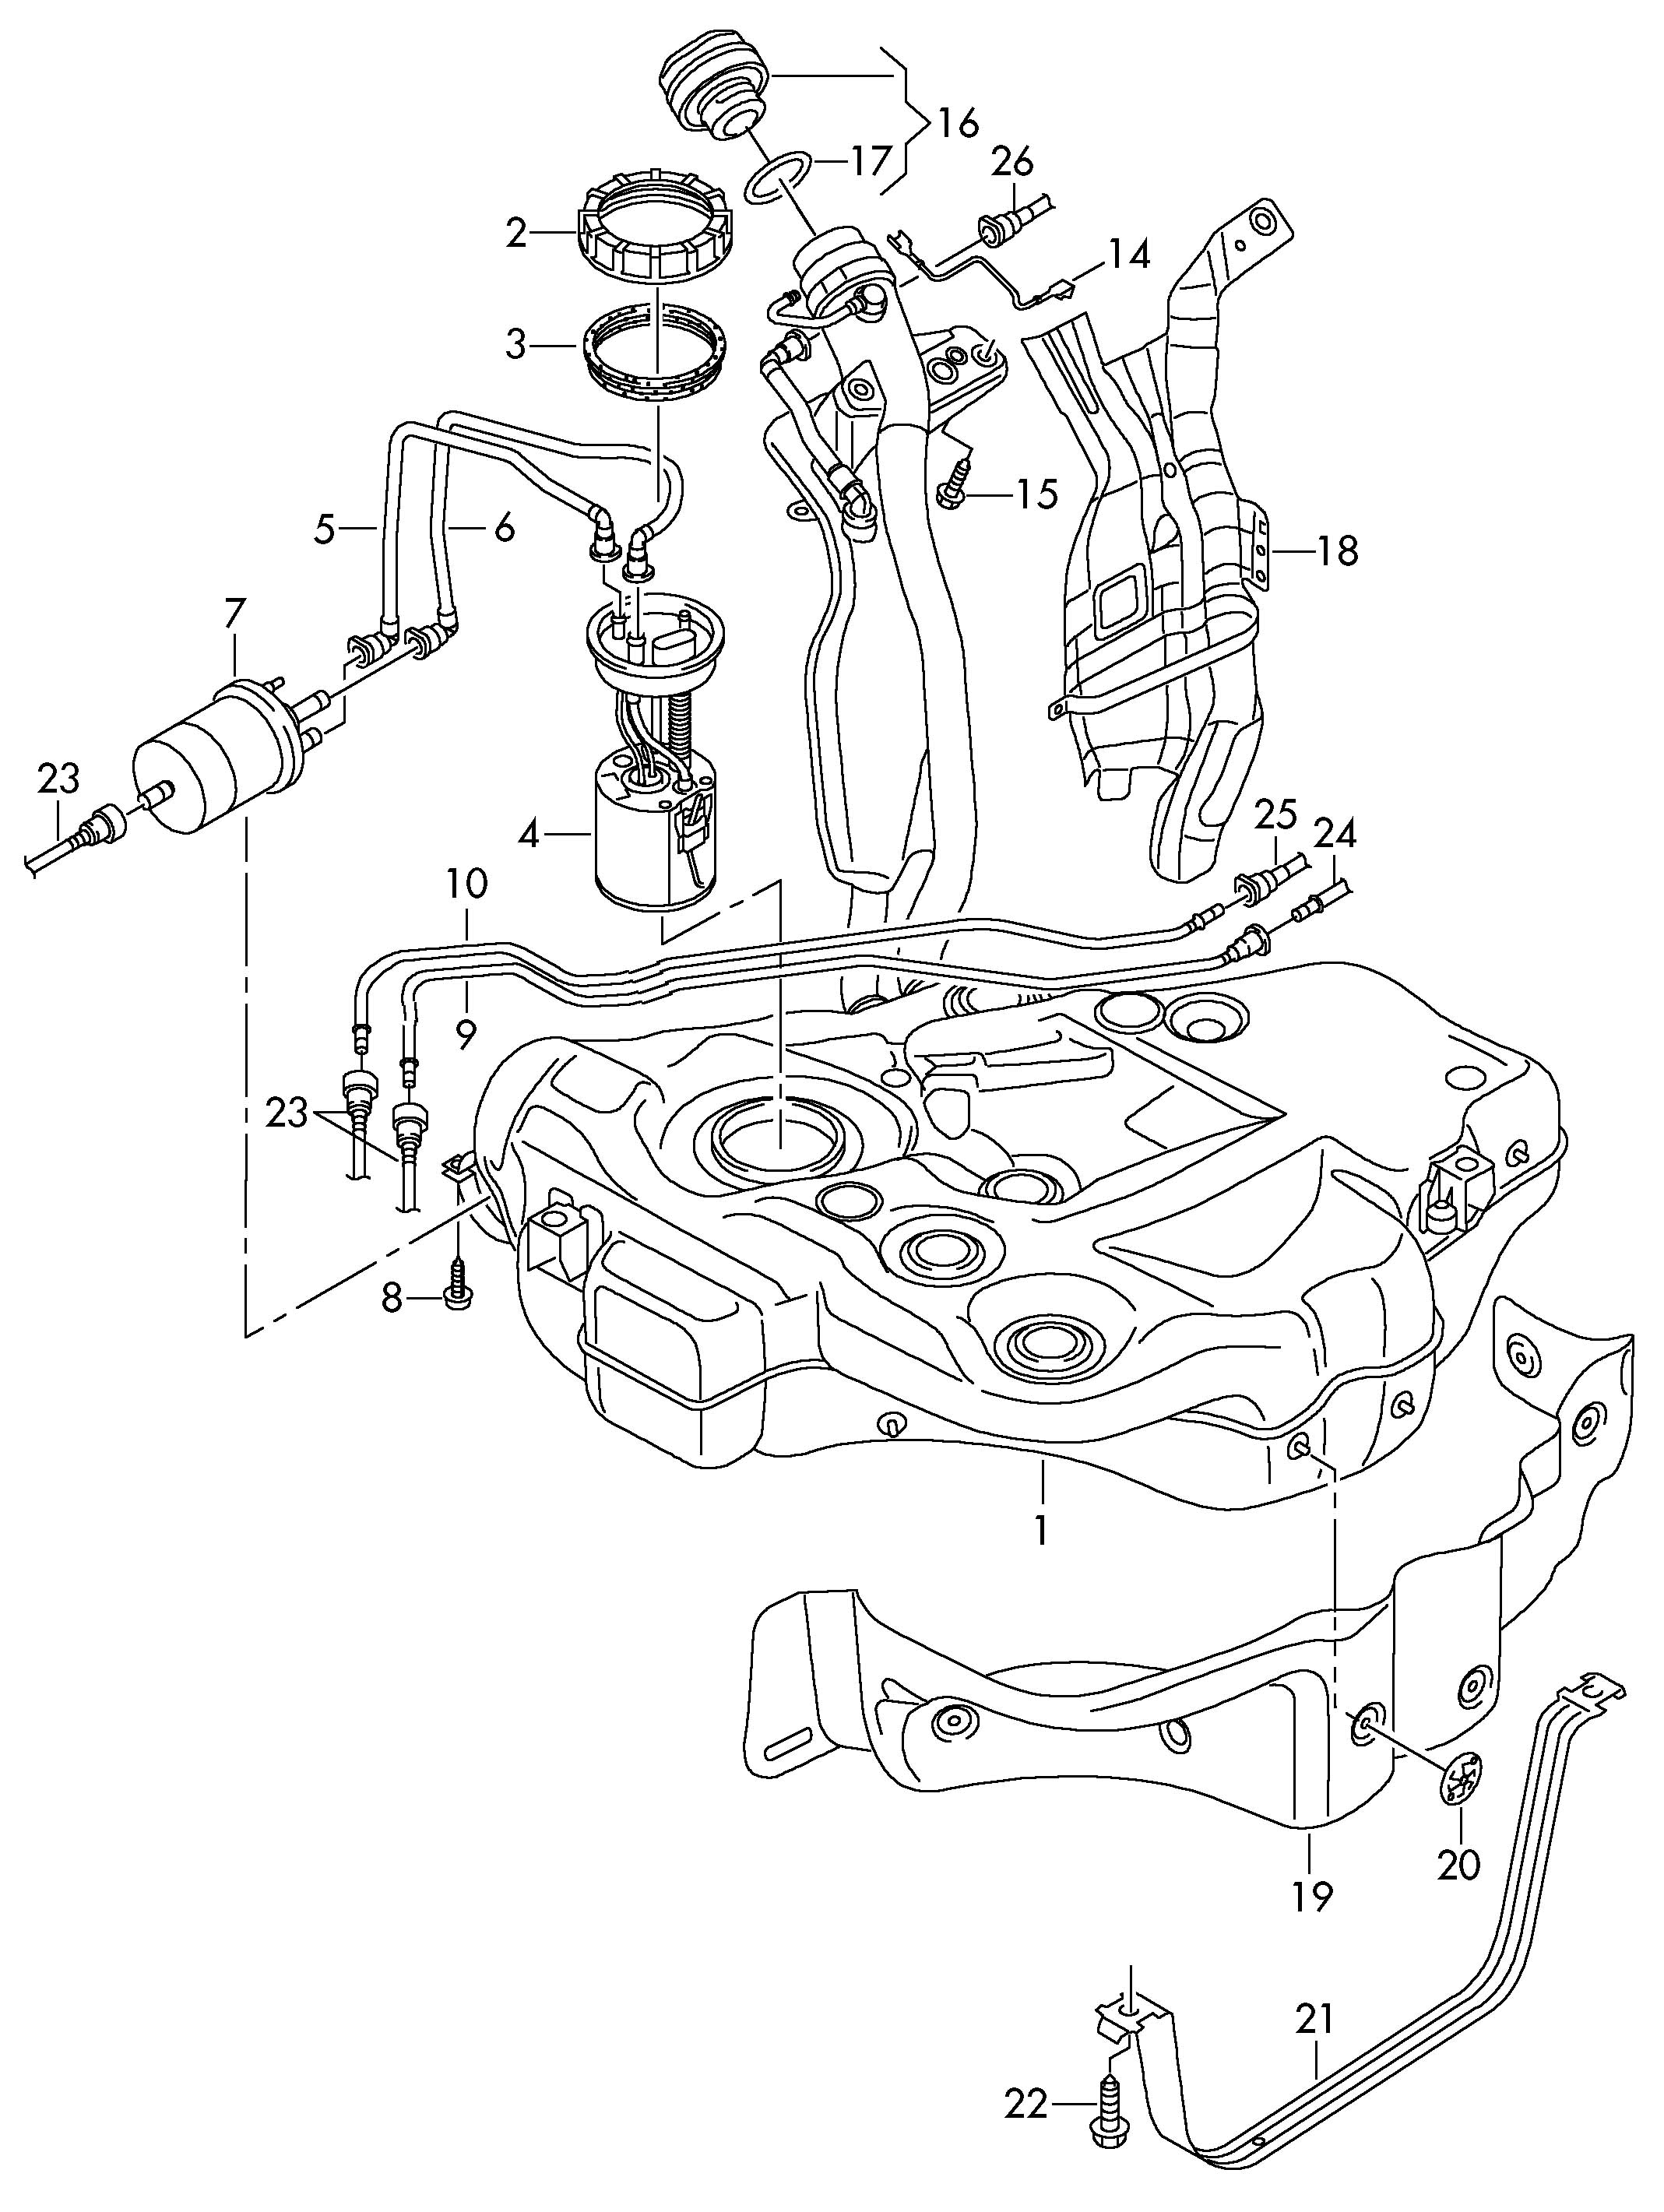 Volkswagen Rabbit Fuel Pressure Regulator, Volkswagen